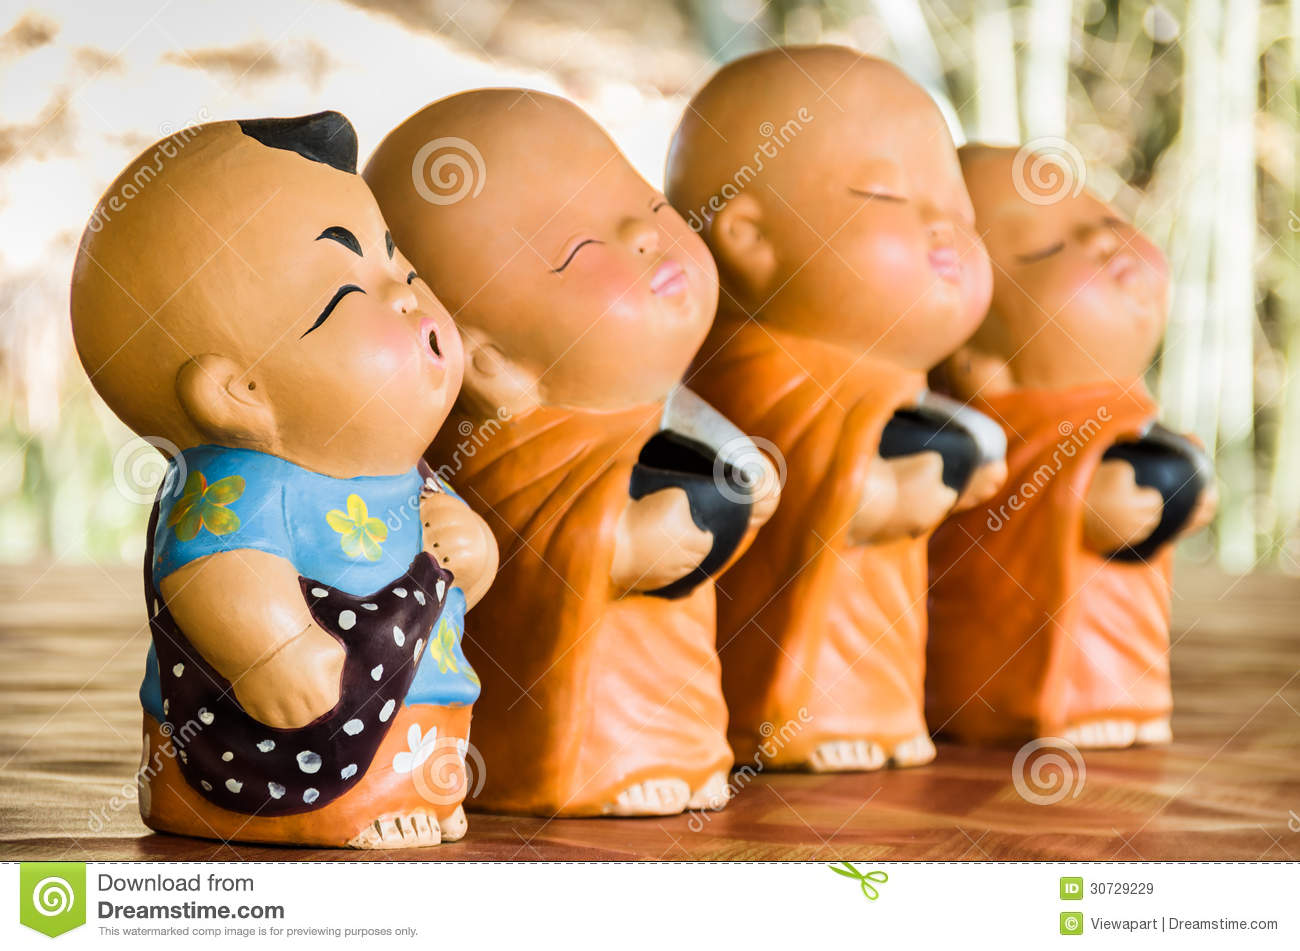 Statues Of Baby Buddhist Monks Royalty Free Stock Images